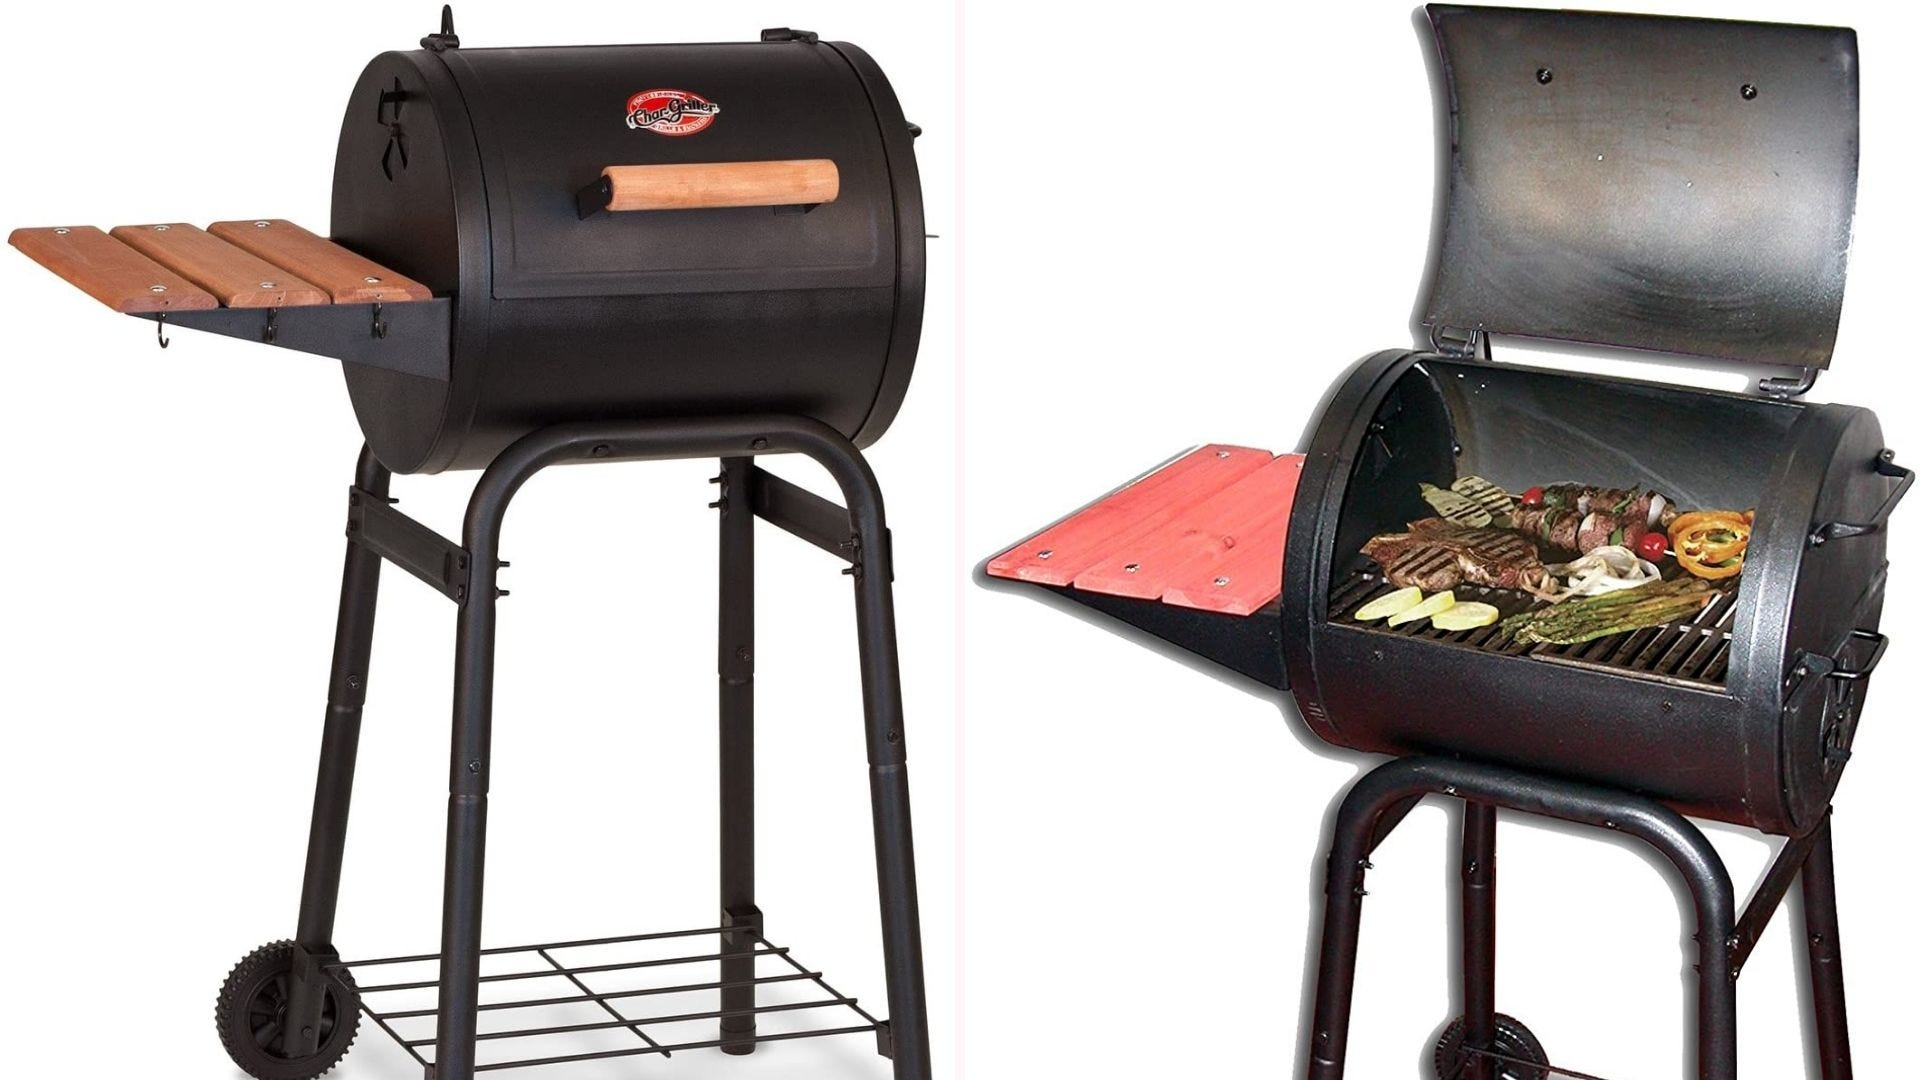 Char-Griller black charcoal grill with two wheels, two shelves, wooden handle, and cast iron cooking grates